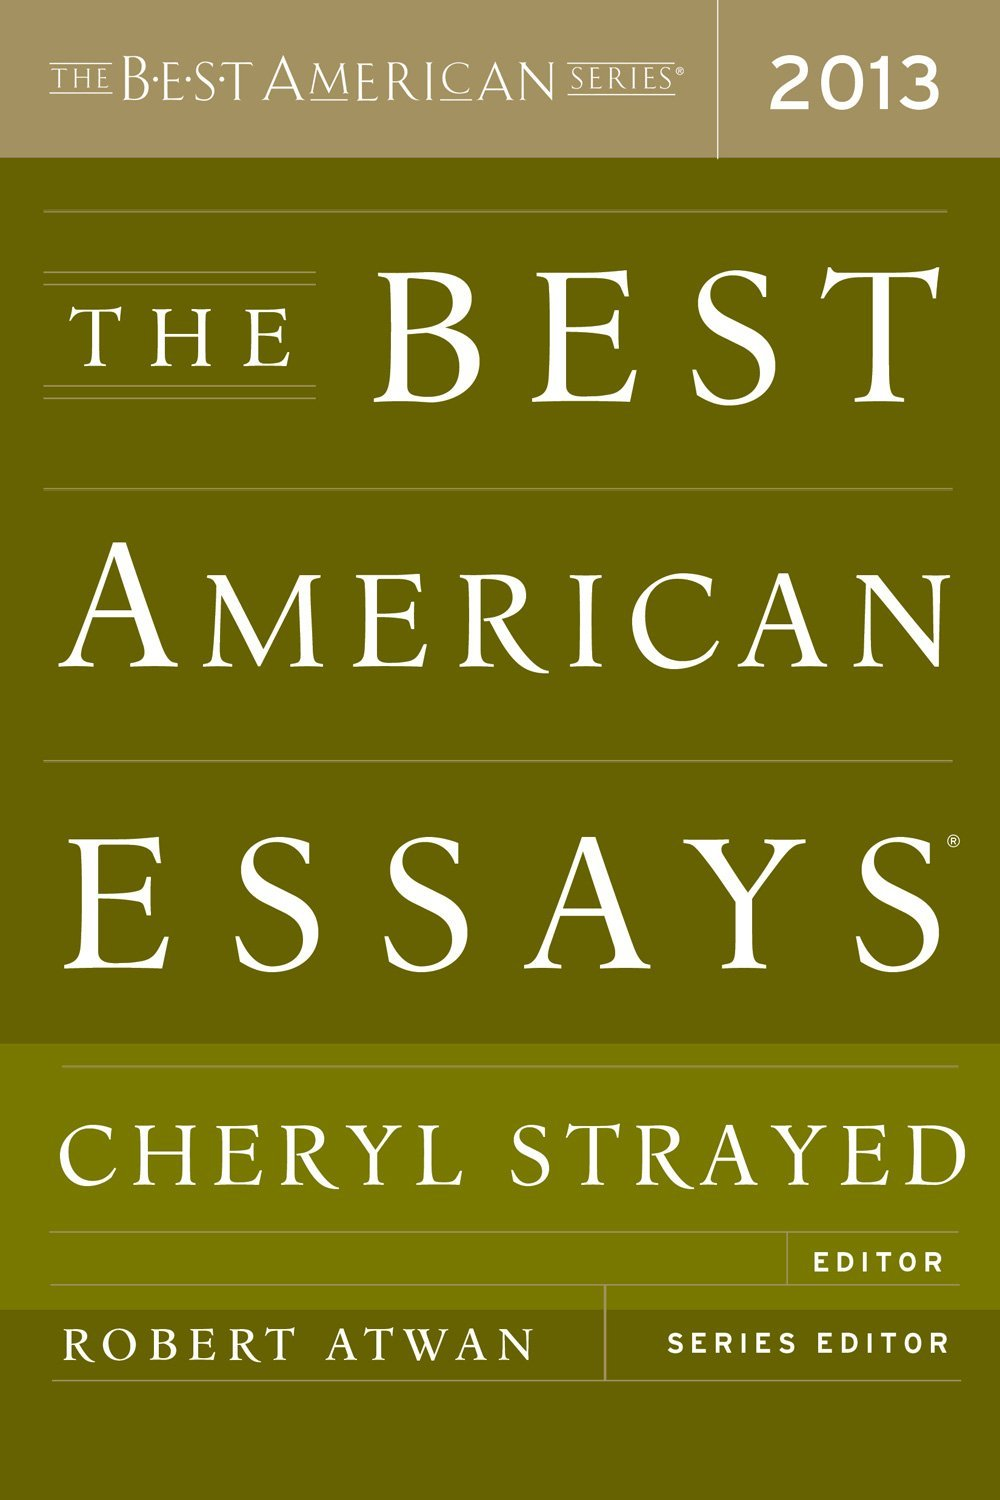 American essays online wearily